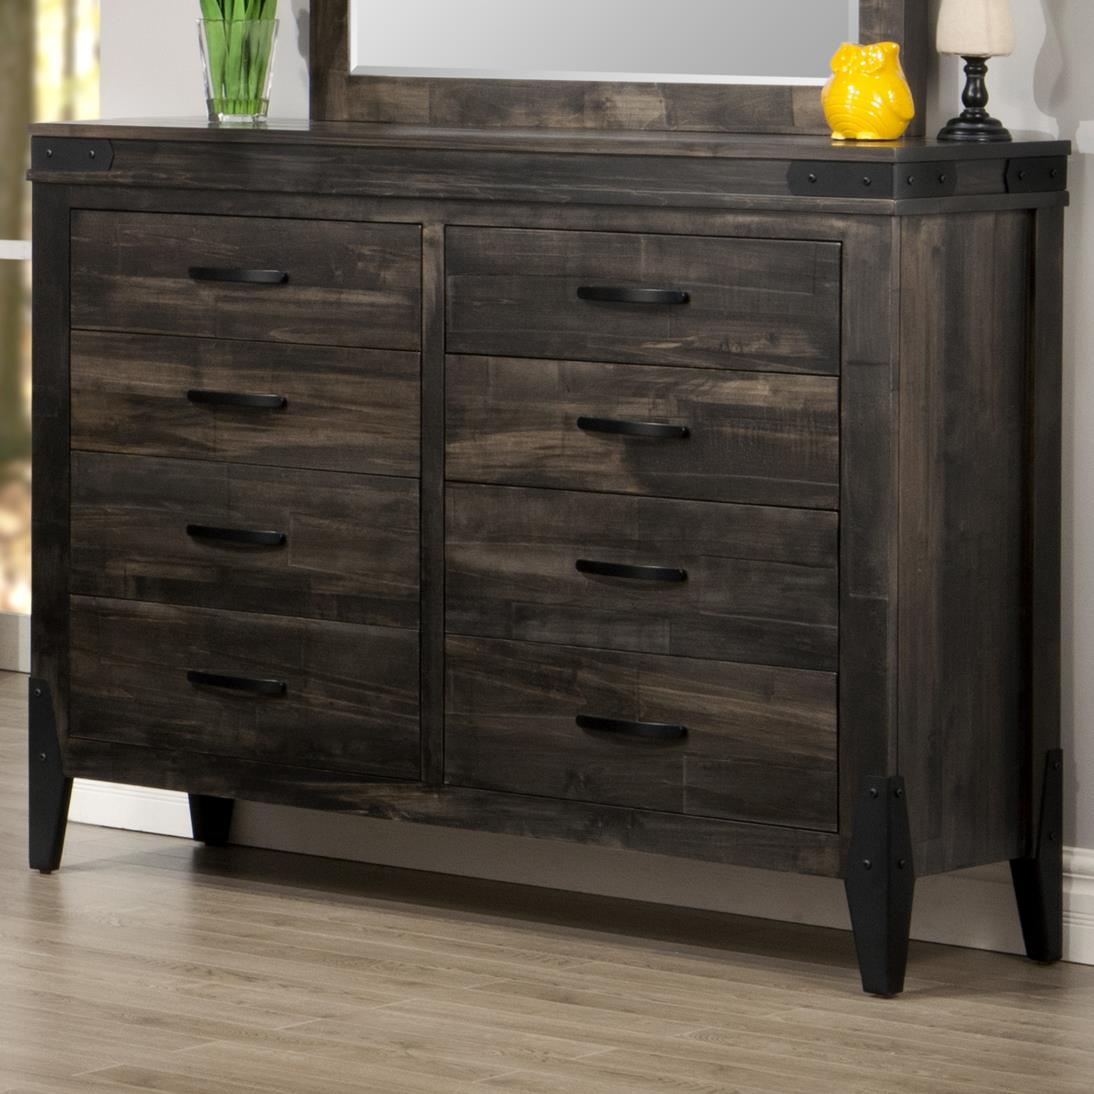 Chattanooga High Dresser by Handstone at Stoney Creek Furniture